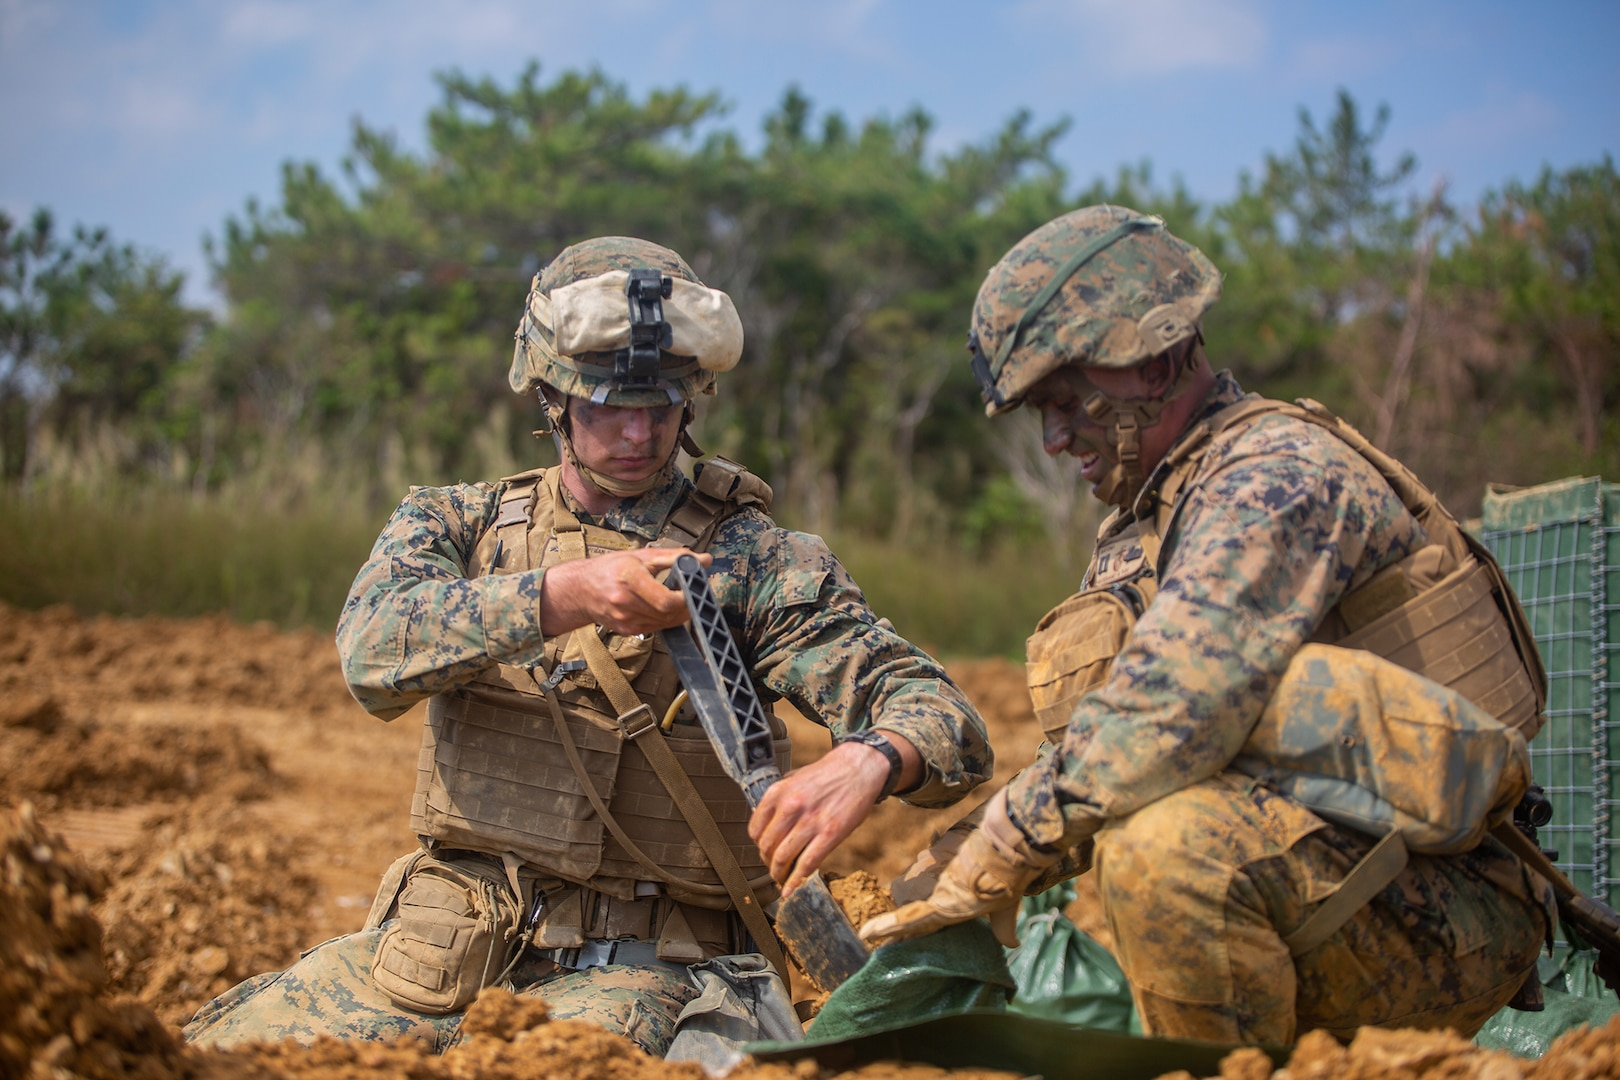 Ready for the test | 9th ESB Marines participate in Marine Corps Combat Readiness Evaluation